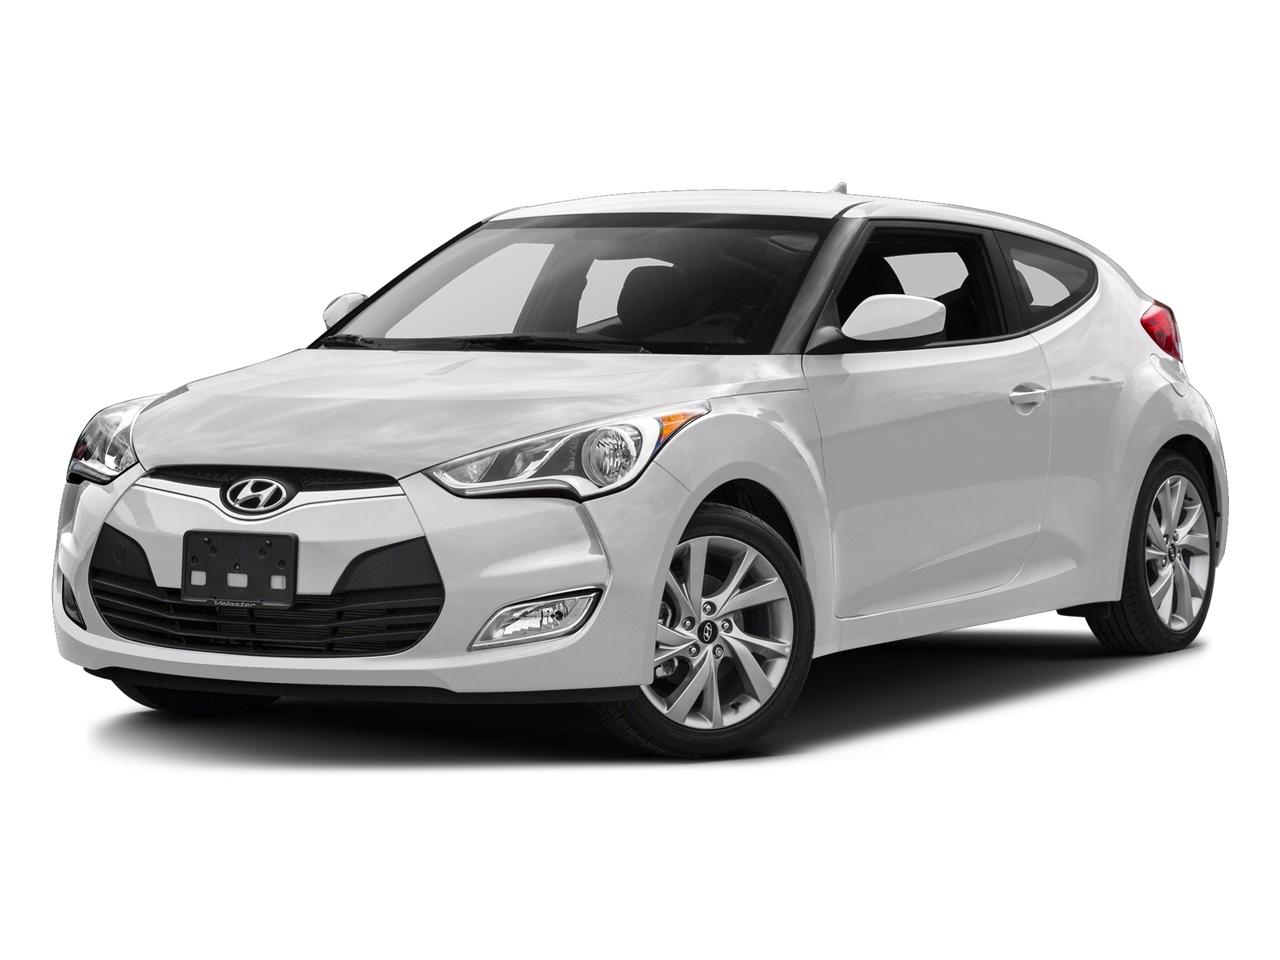 2017 Hyundai Veloster Vehicle Photo in Easton, MD 21601